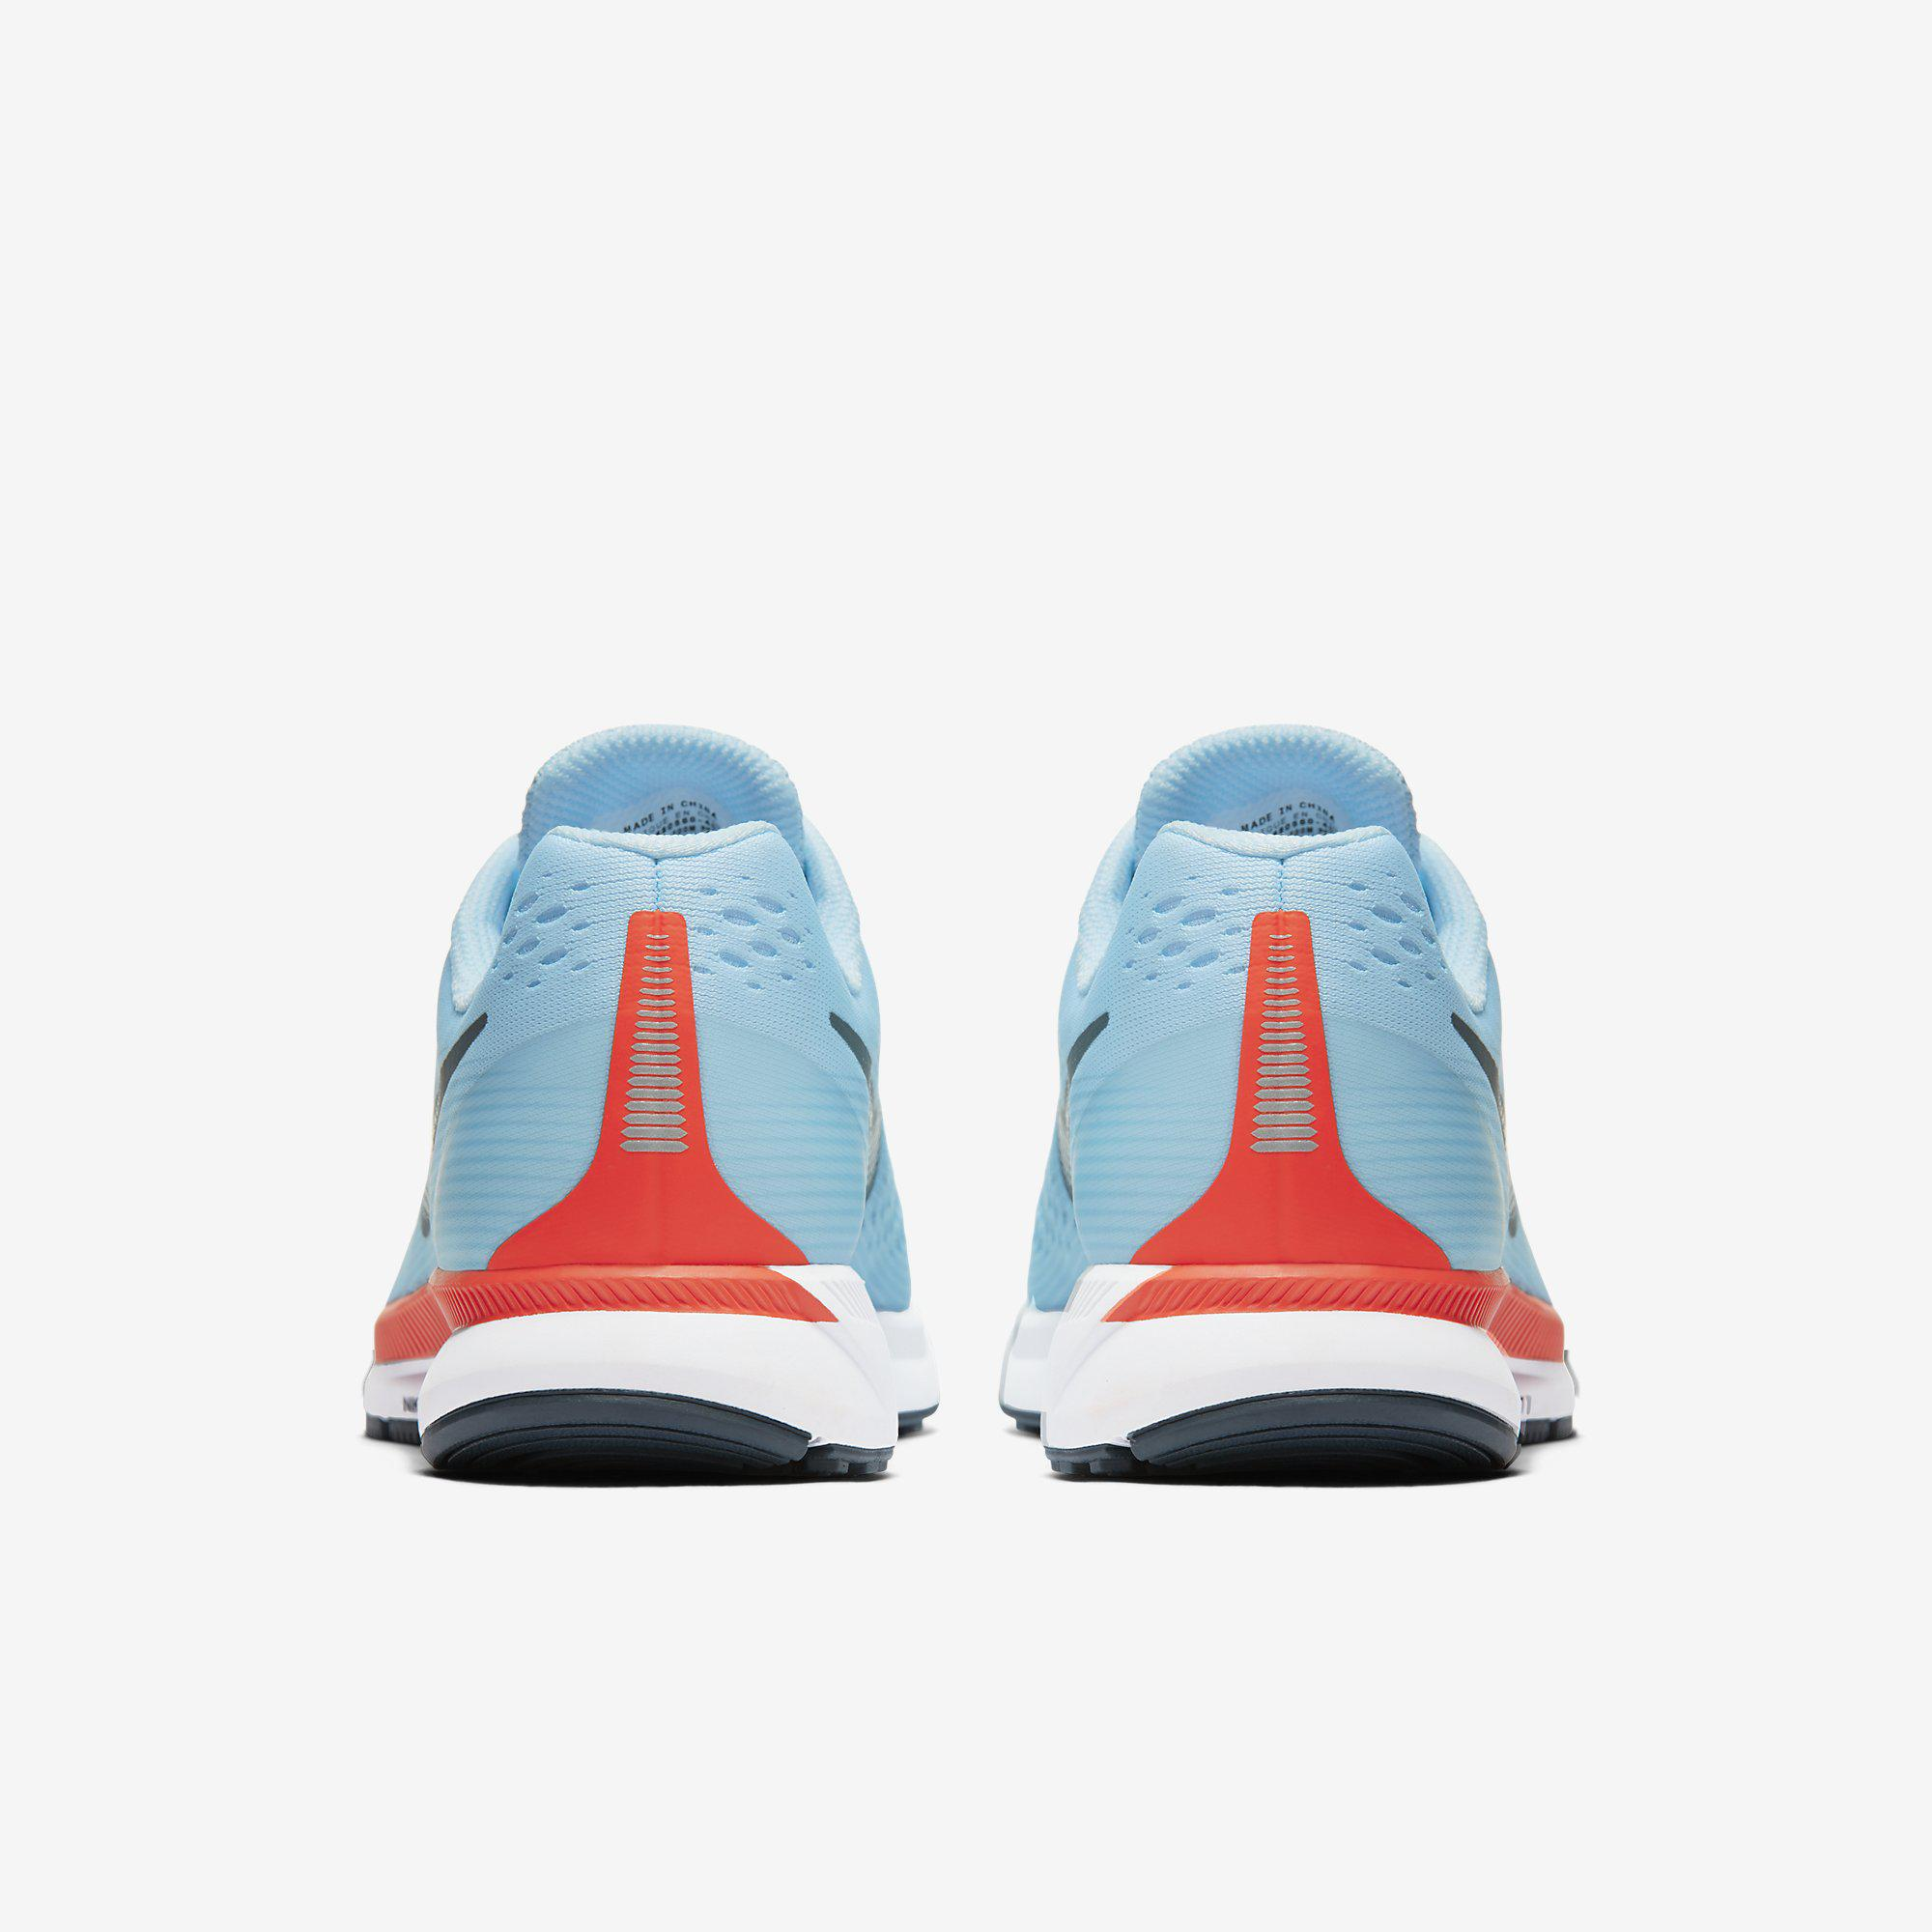 864d11b81de0 Nike Mens Air Zoom Pegasus 34 Running Shoes - Ice Blue - Tennisnuts.com